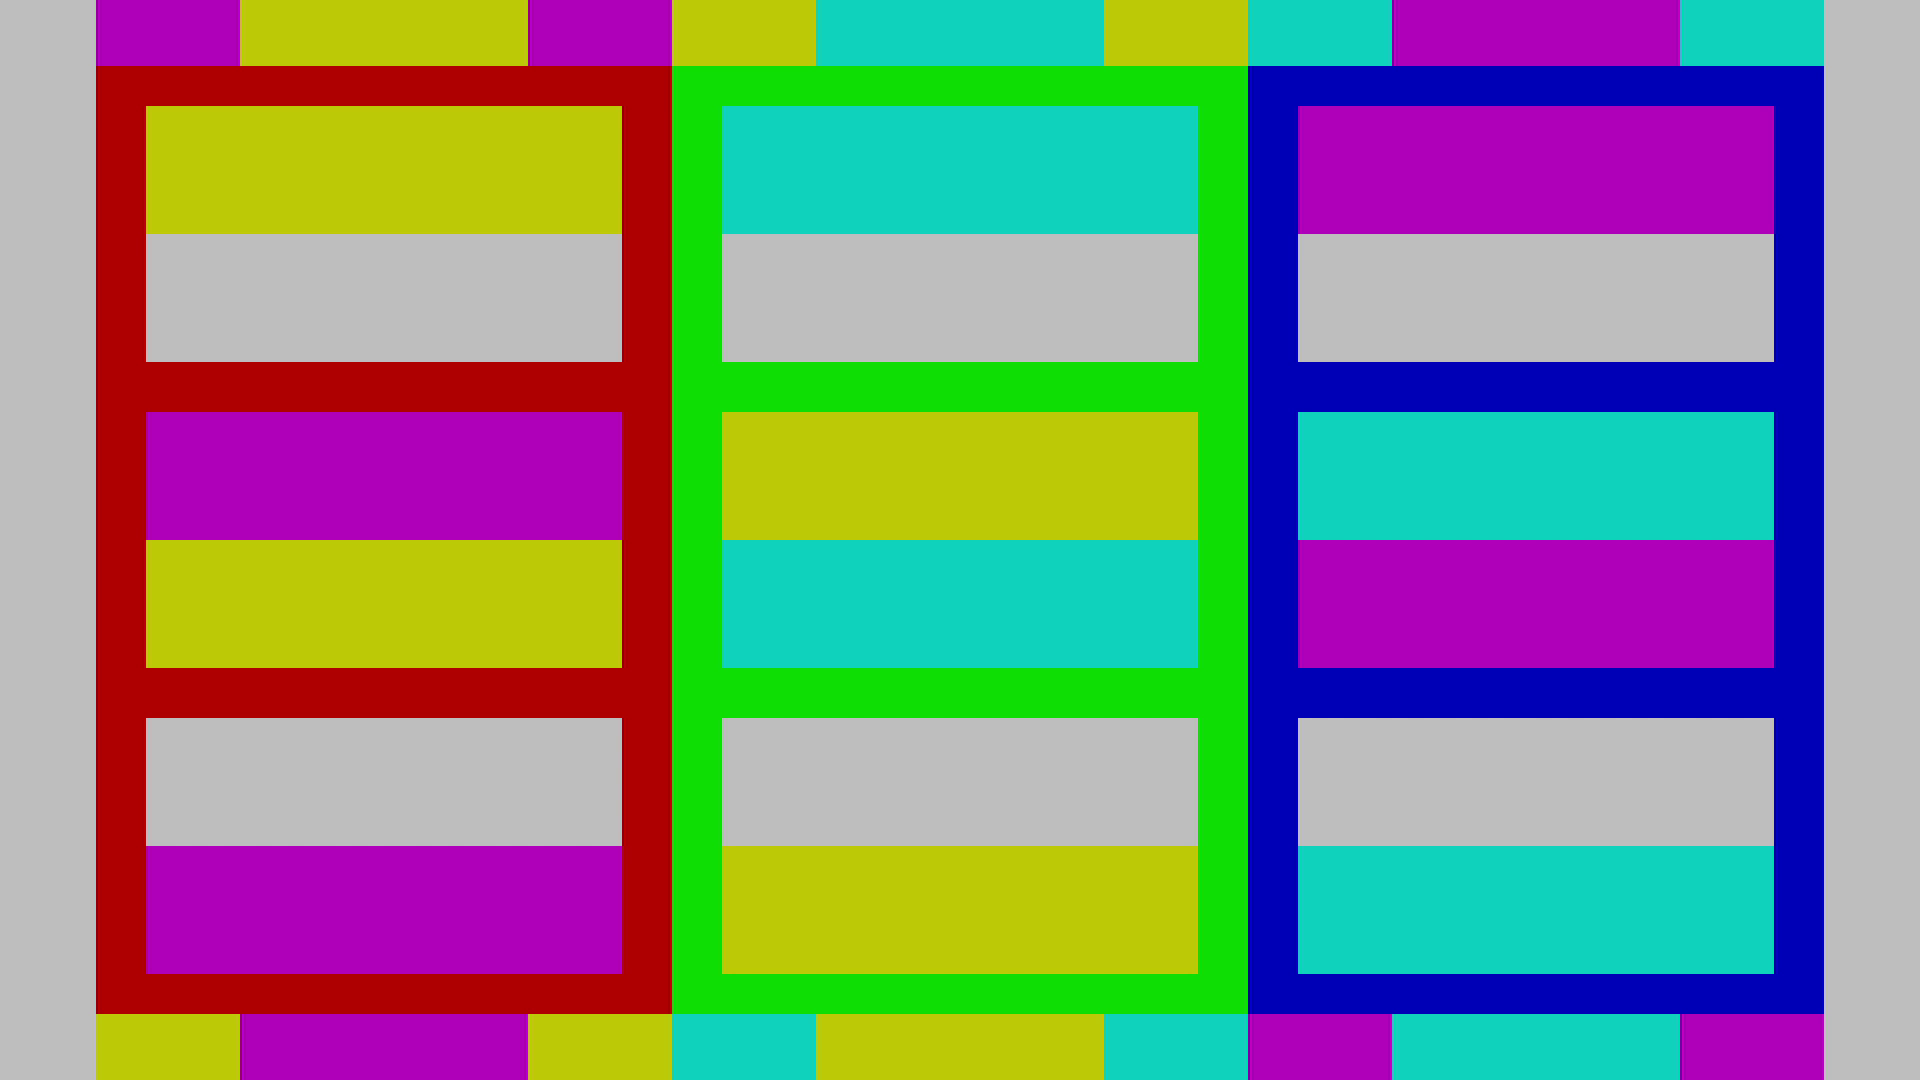 104_Colors.png